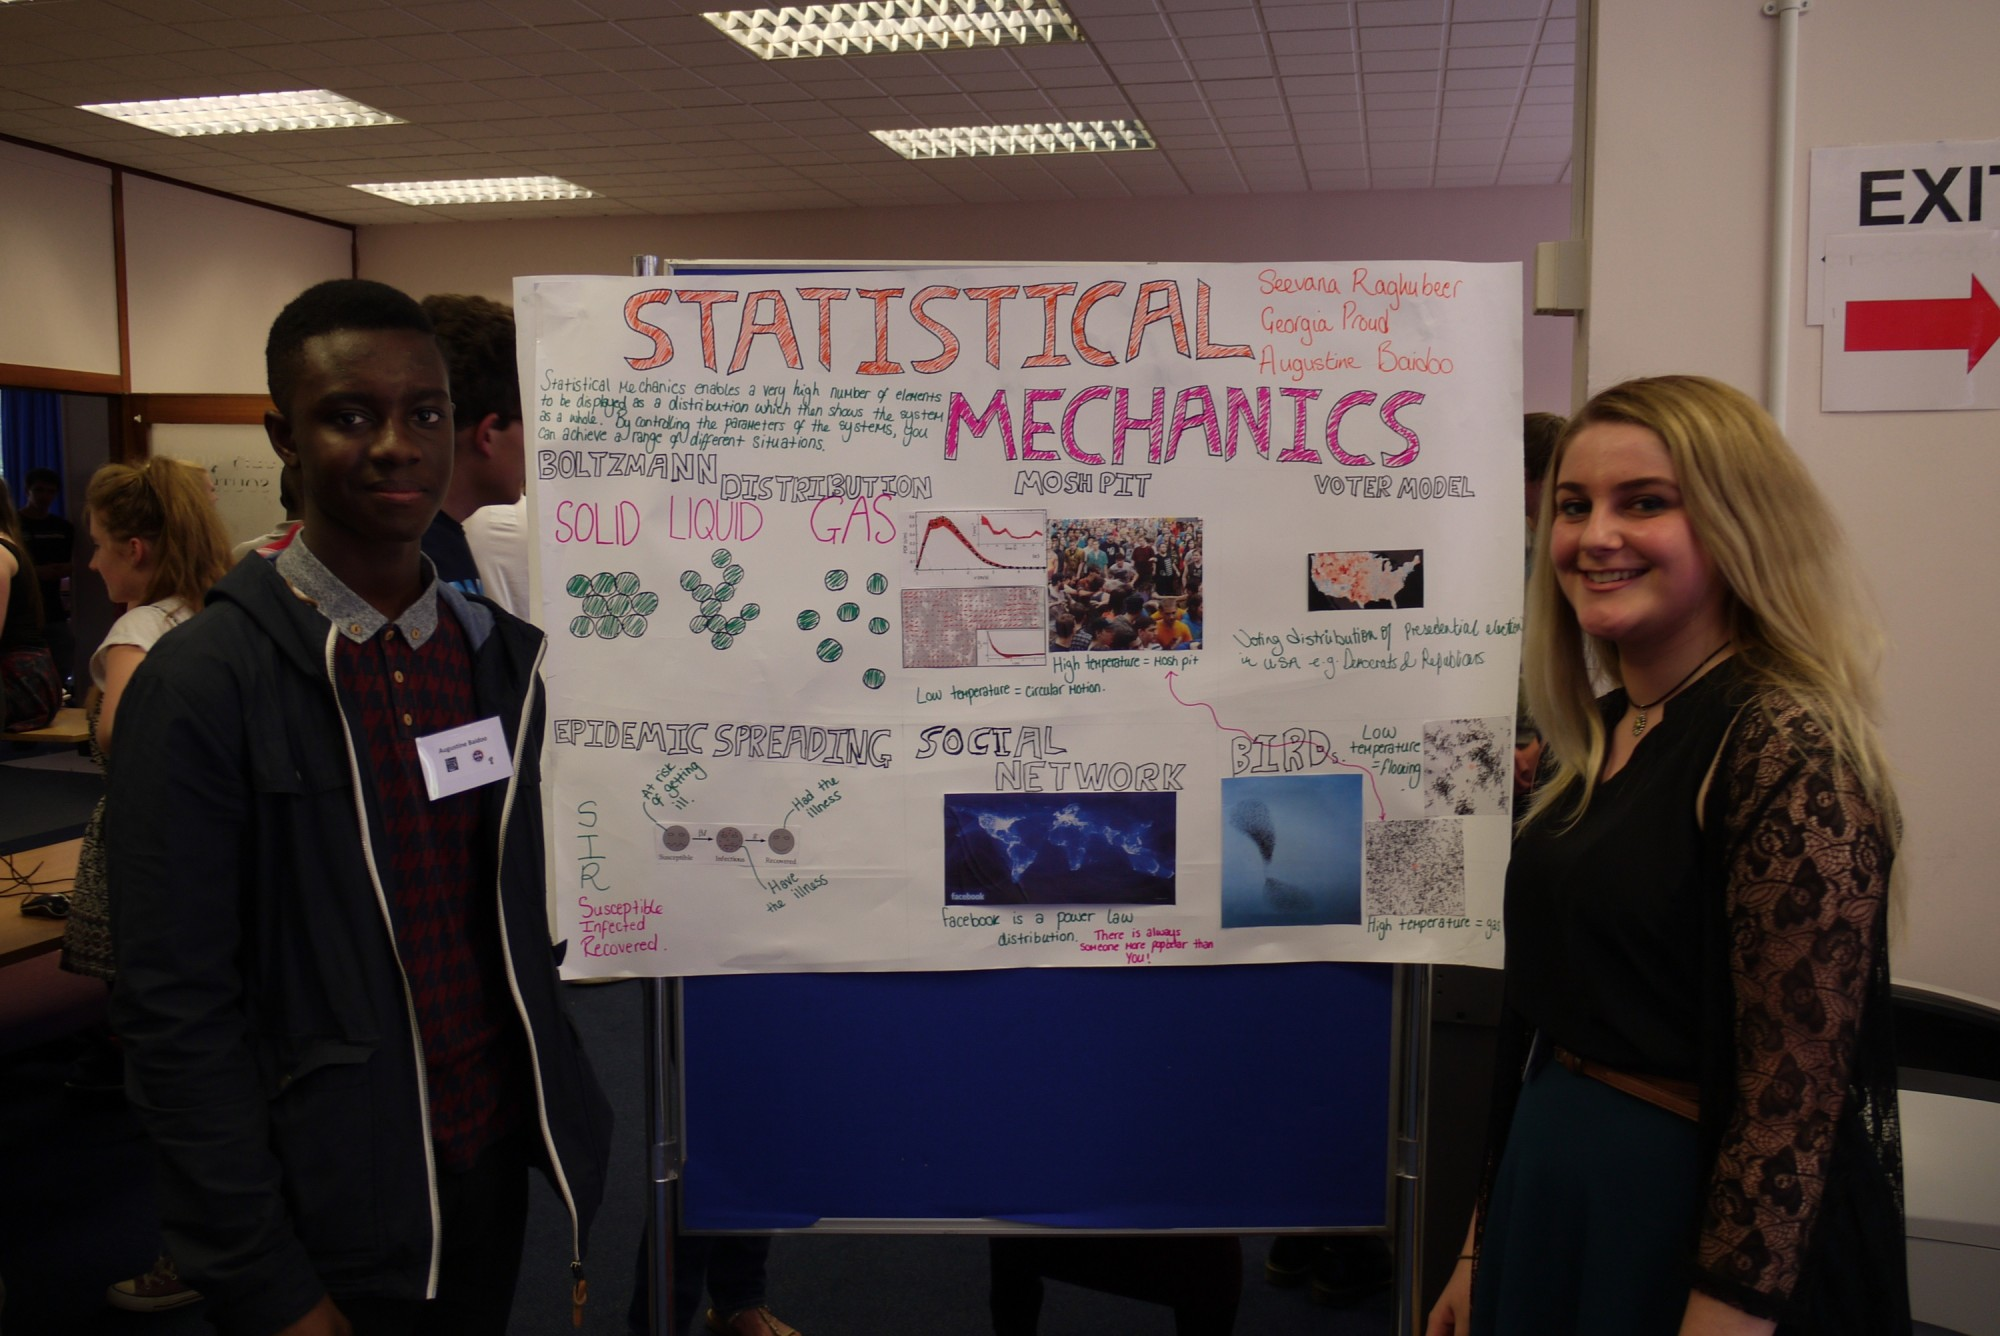 The statistical mechanics team with their poster.